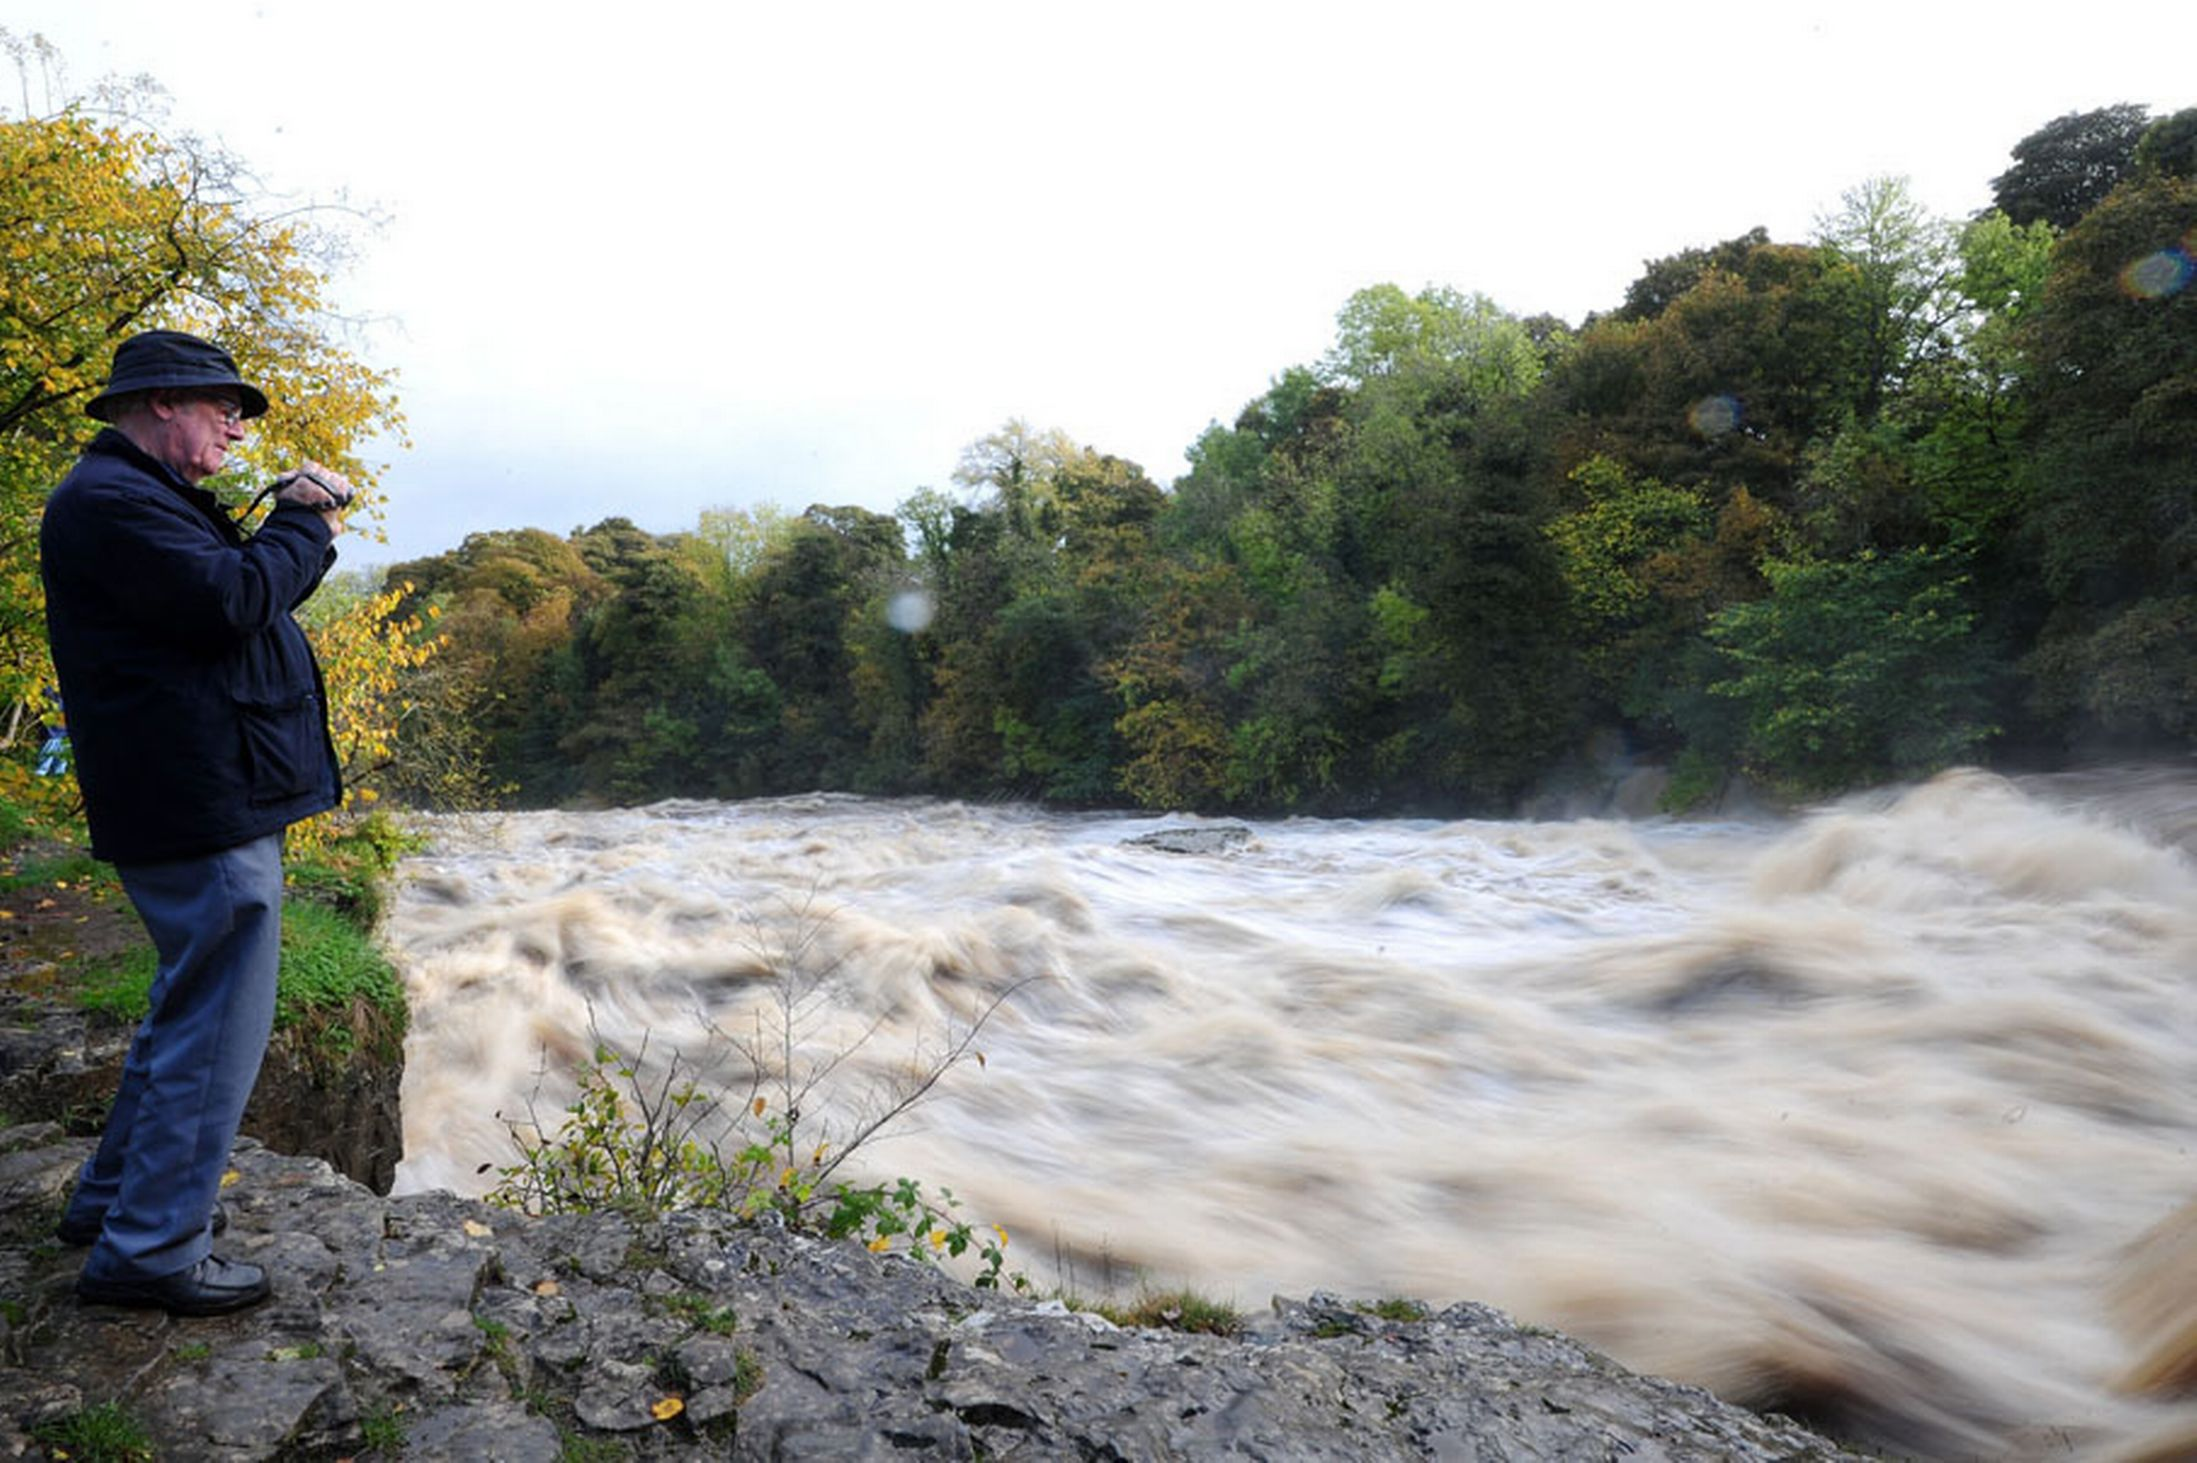 A-man-looks-out-over-the-fast-flowing-and-swollen-River-Ure-at-Aysgarth-Falls-North-Yorkshire-23rd-October-2641150